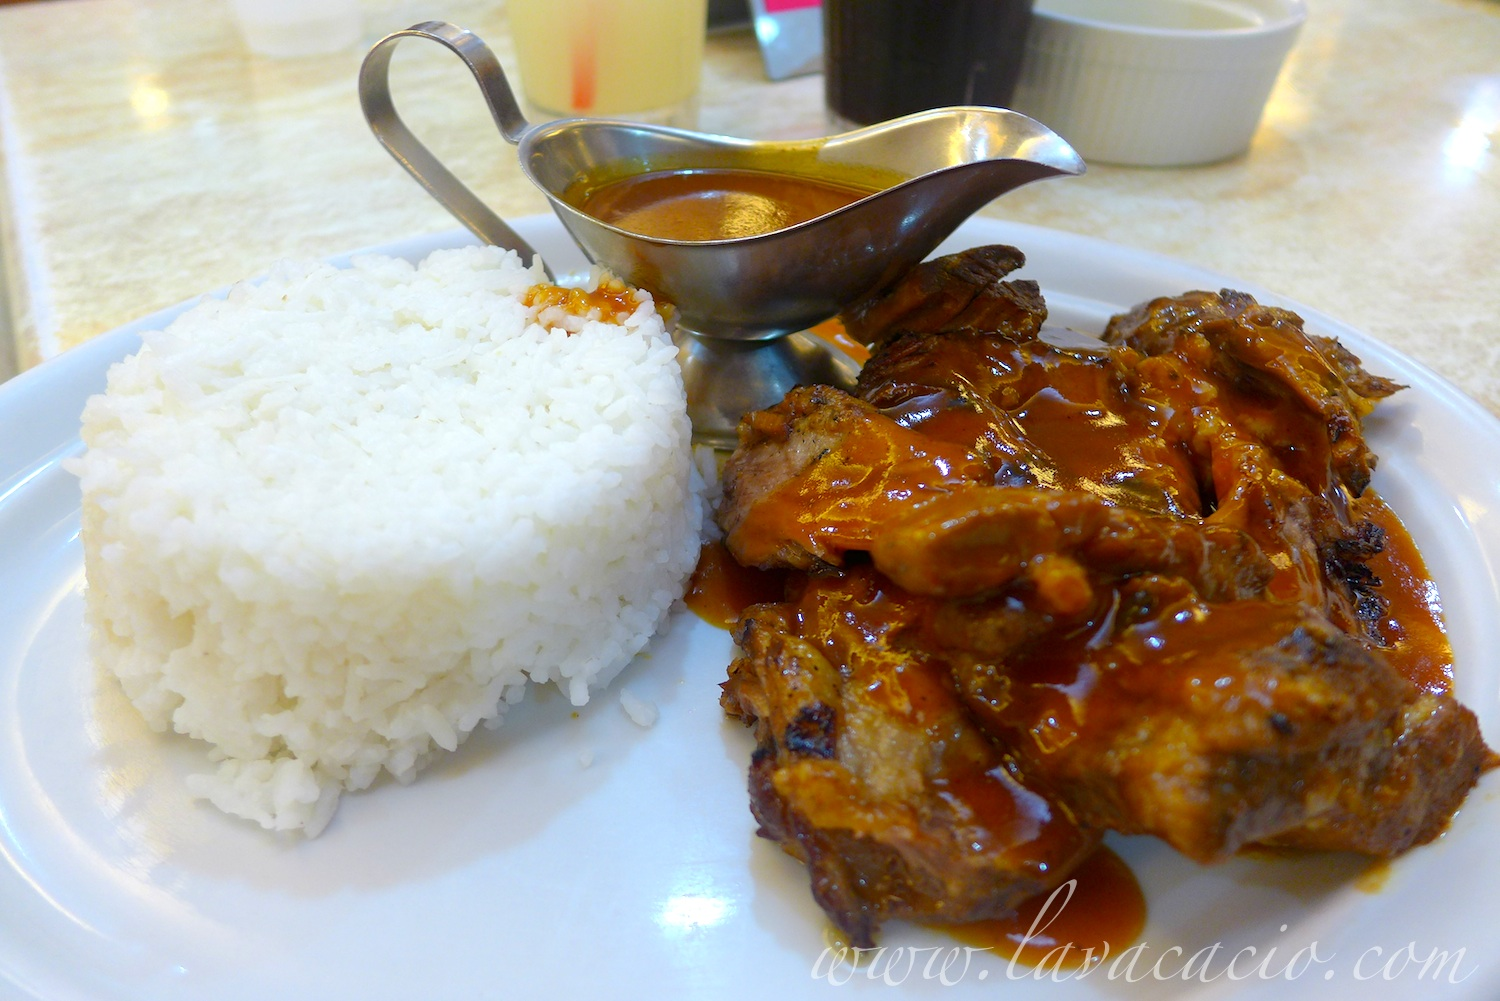 Combo 8 BBQ Pork Ribs without the Java Rice (Php 235)